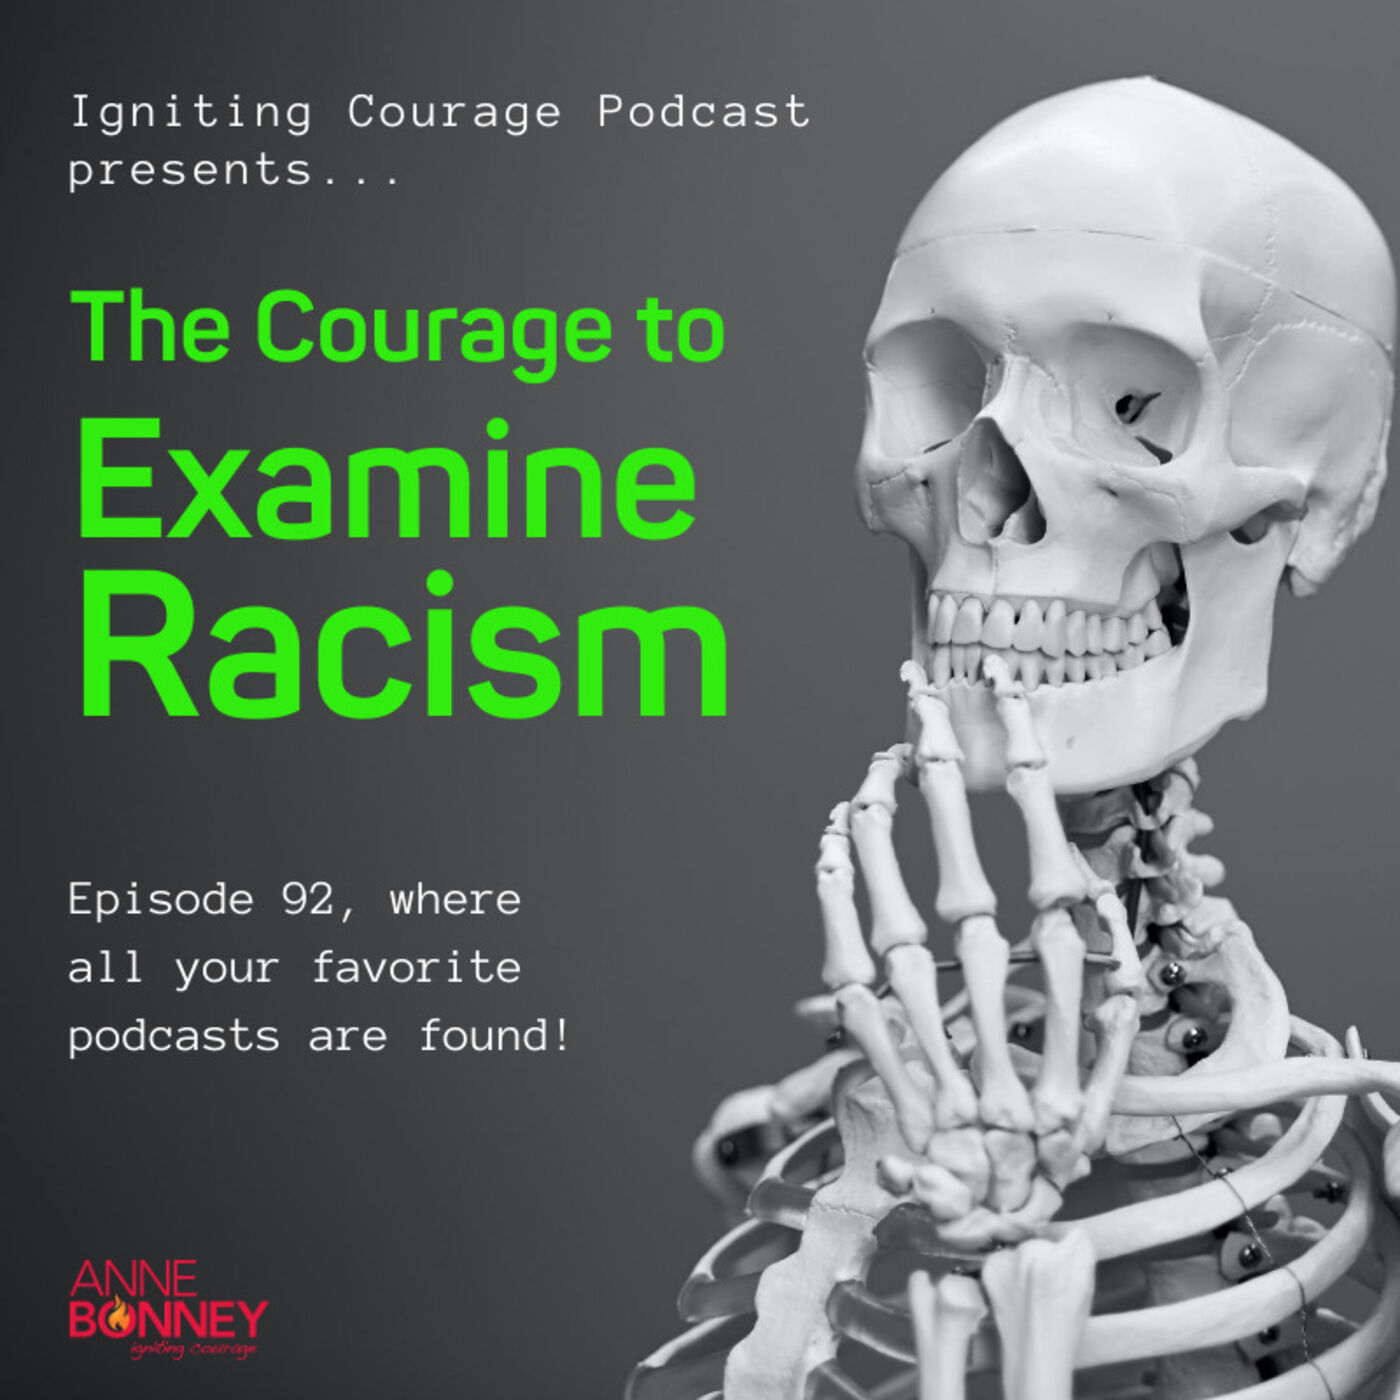 IGNITING COURAGE Podcast Episode 92: The Courage to Examine Racism